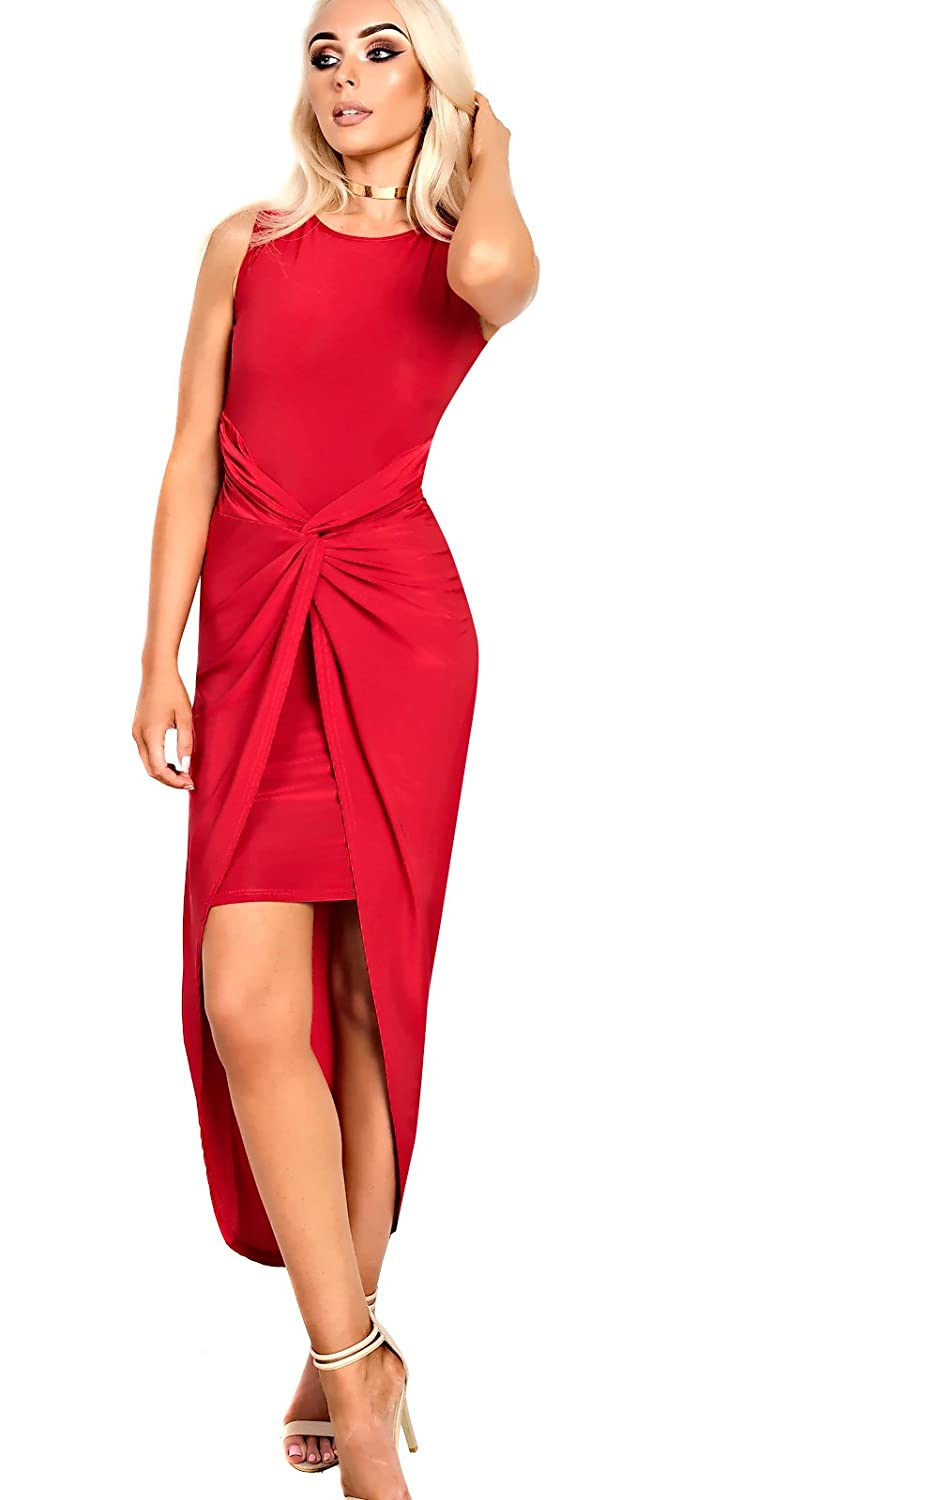 Women's Ladies Stunning Bodycon Gathered Party Evening Dress